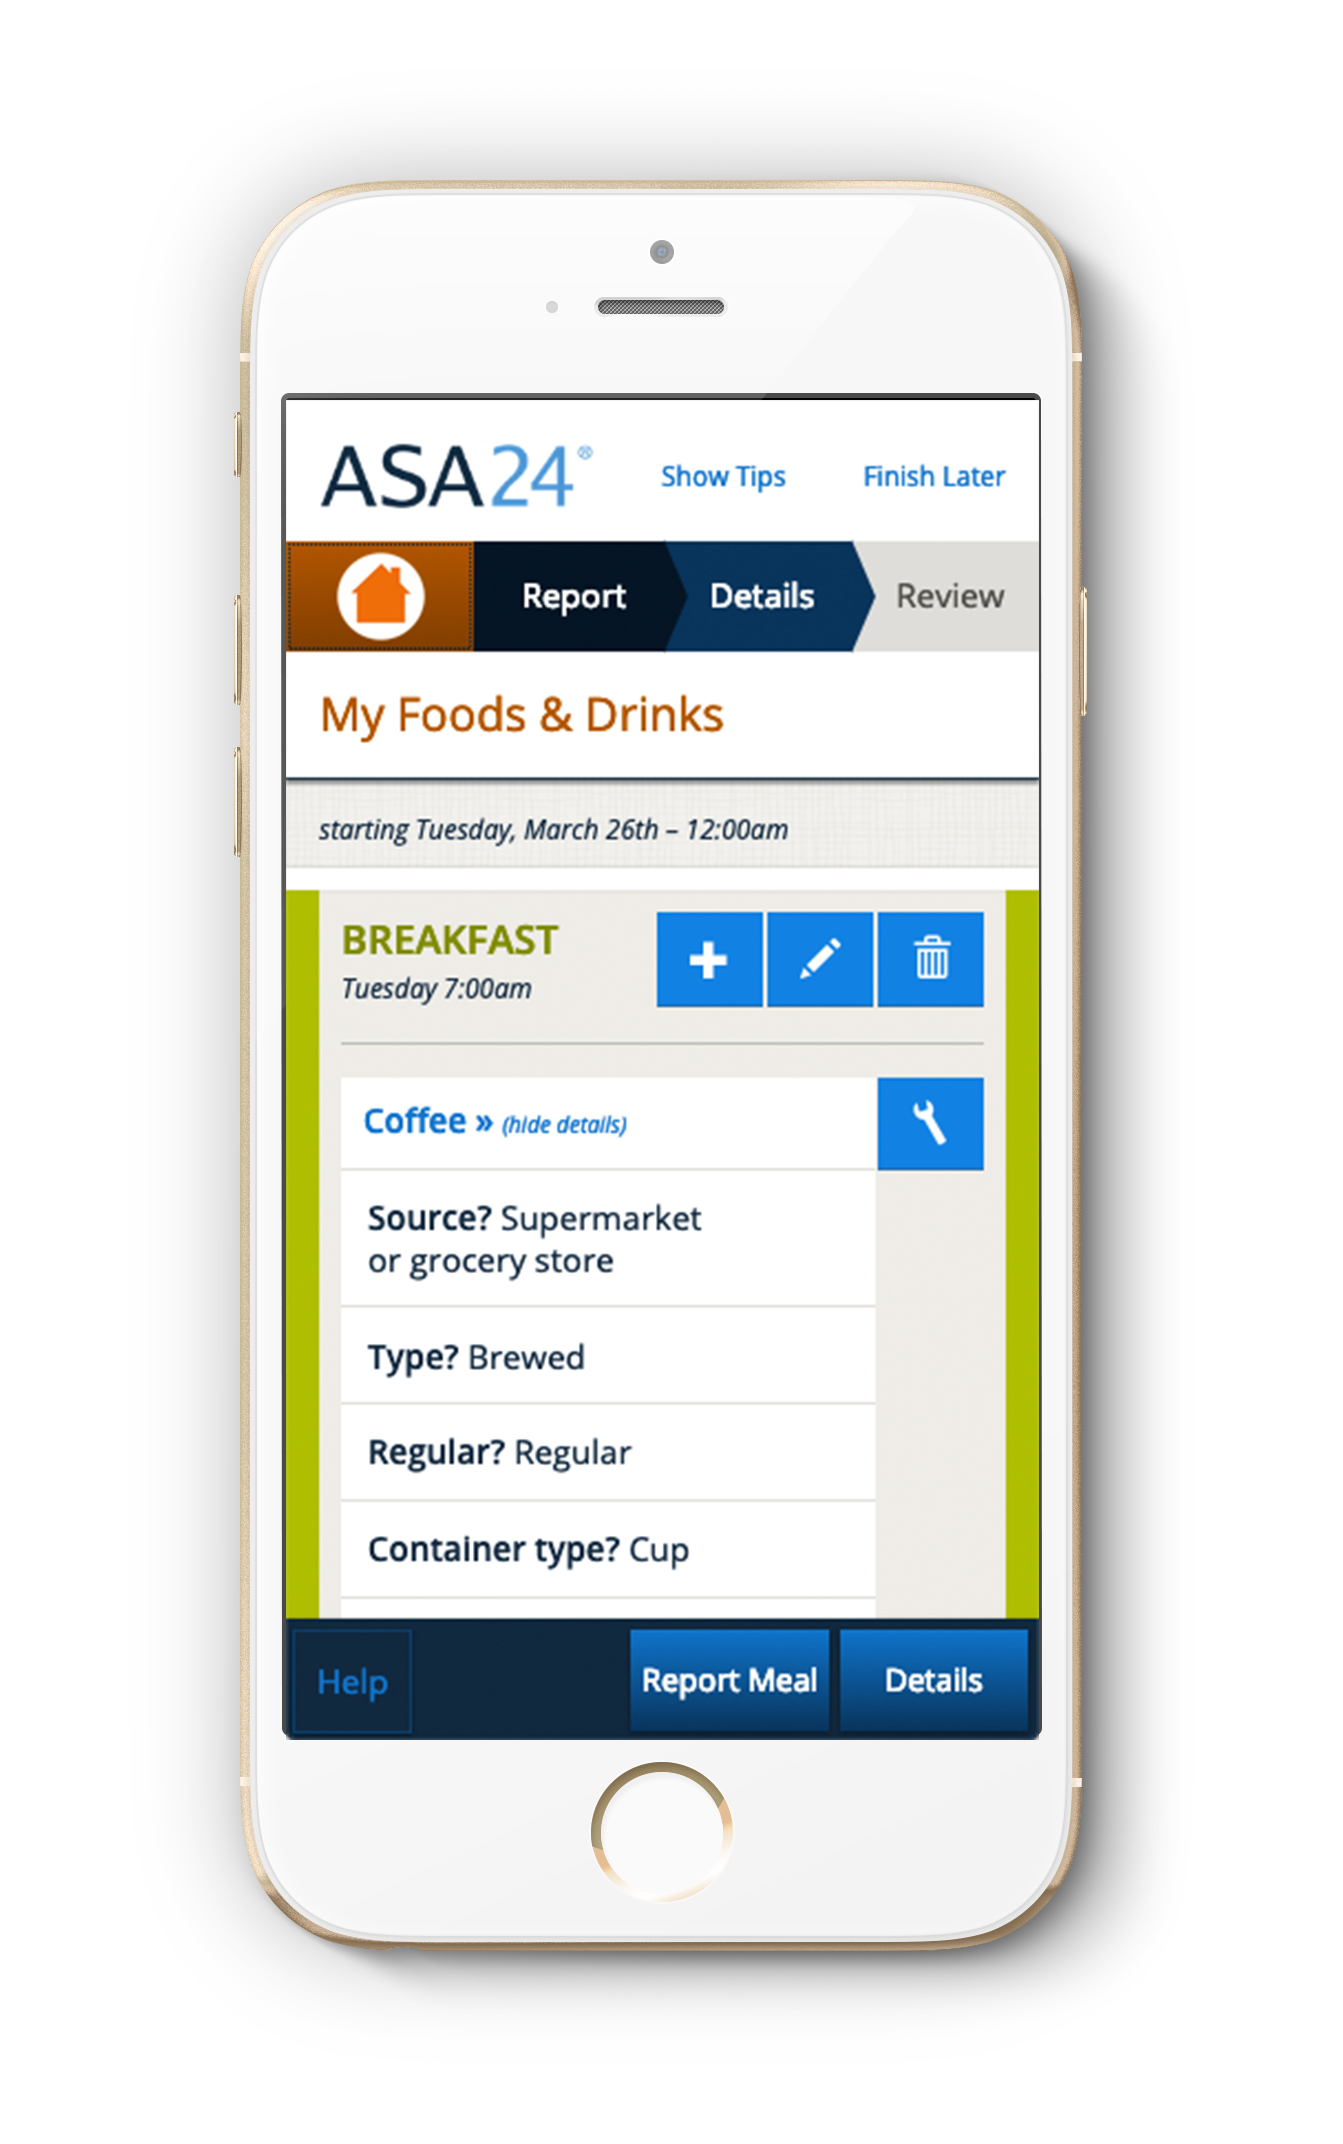 asa_mobile screen 1.jpg